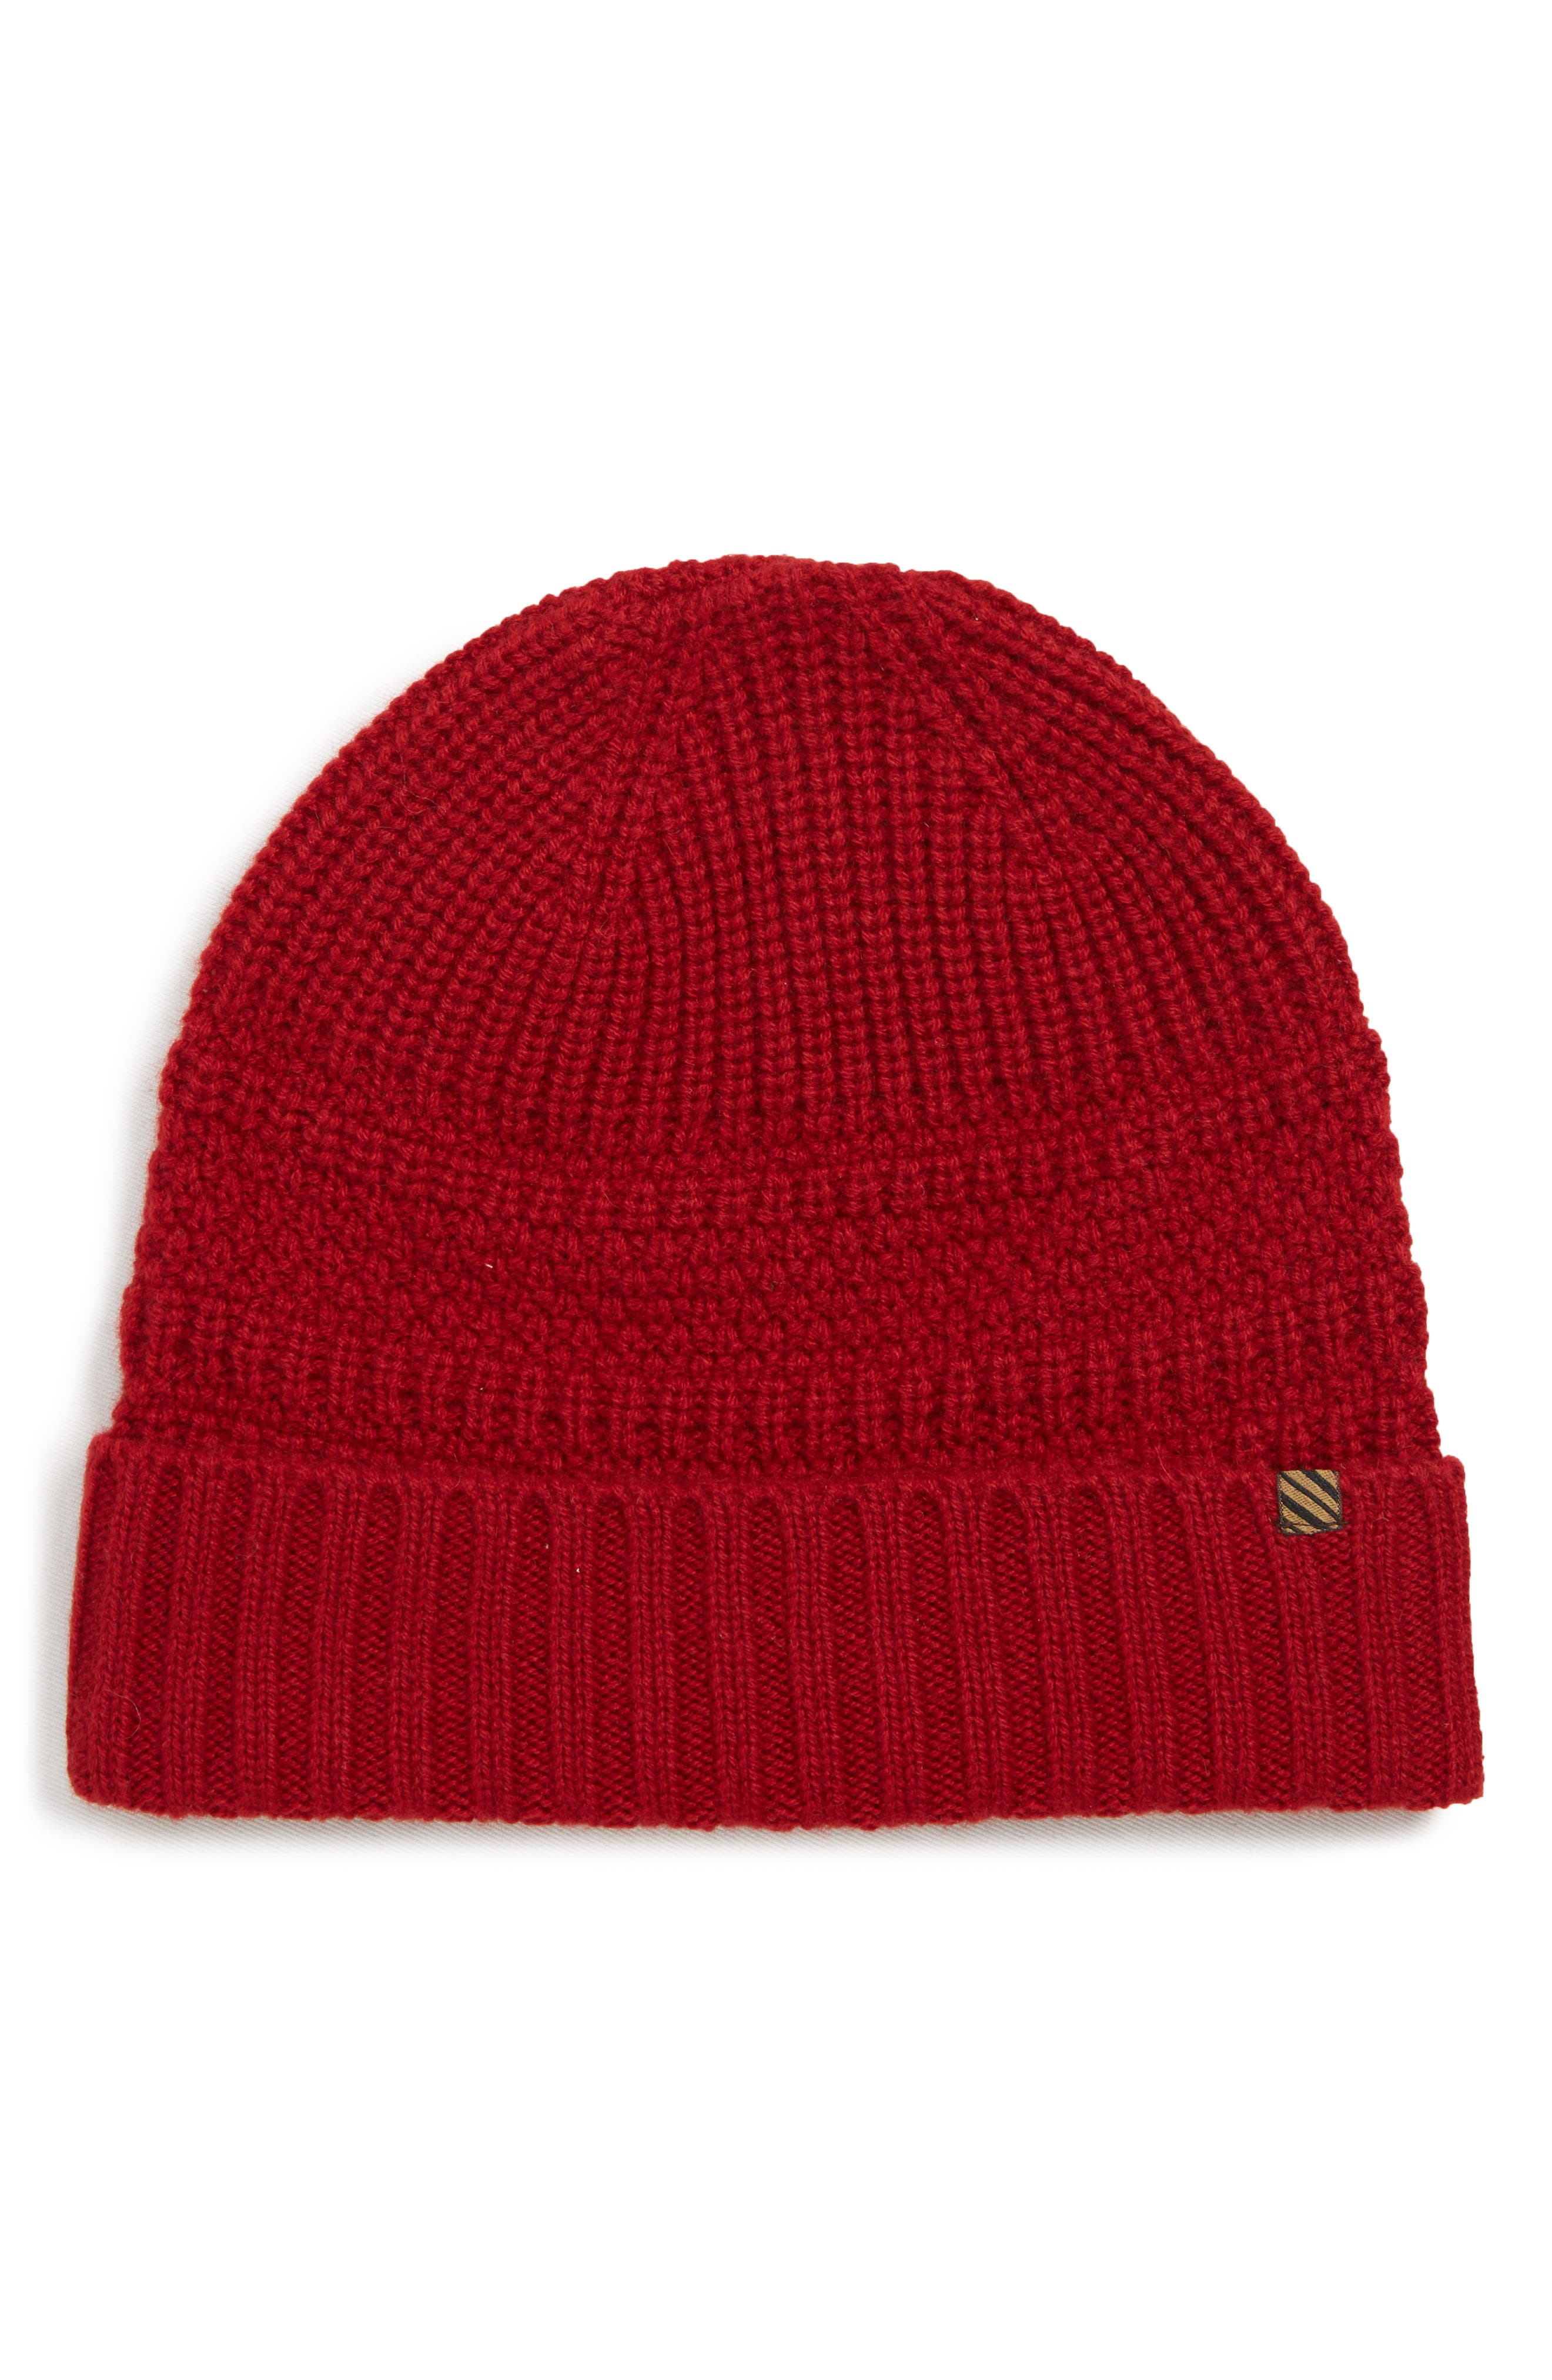 Ribbon Shaker Cashmere Beanie - Red